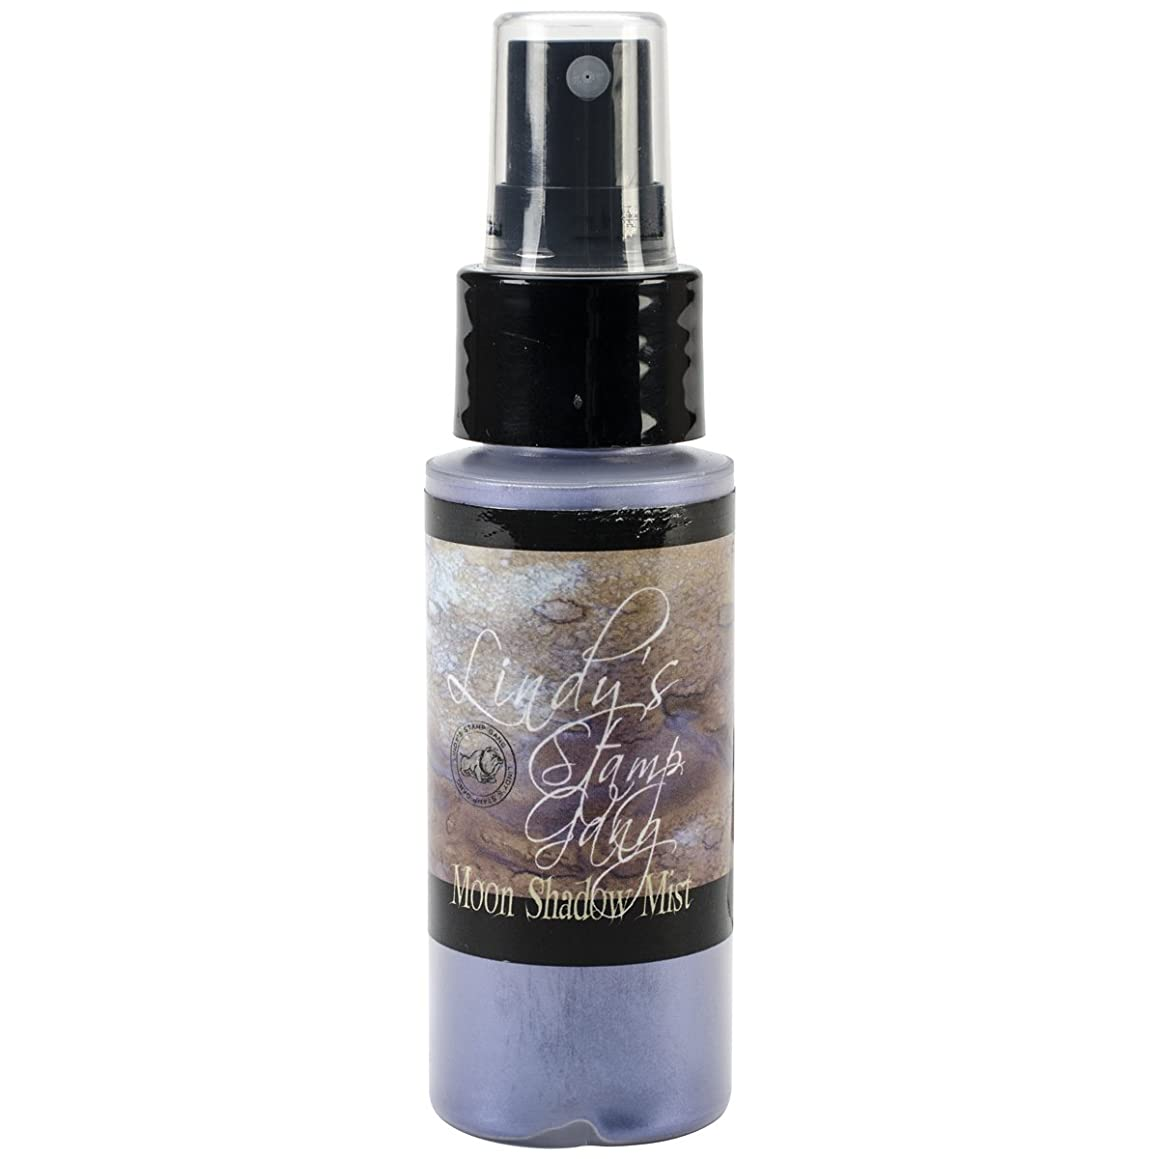 Lindy's Stamp Gang Moon Shadow Mist Spray Paint, 2-Ounce Bottle, Bluebeard Blue Violet